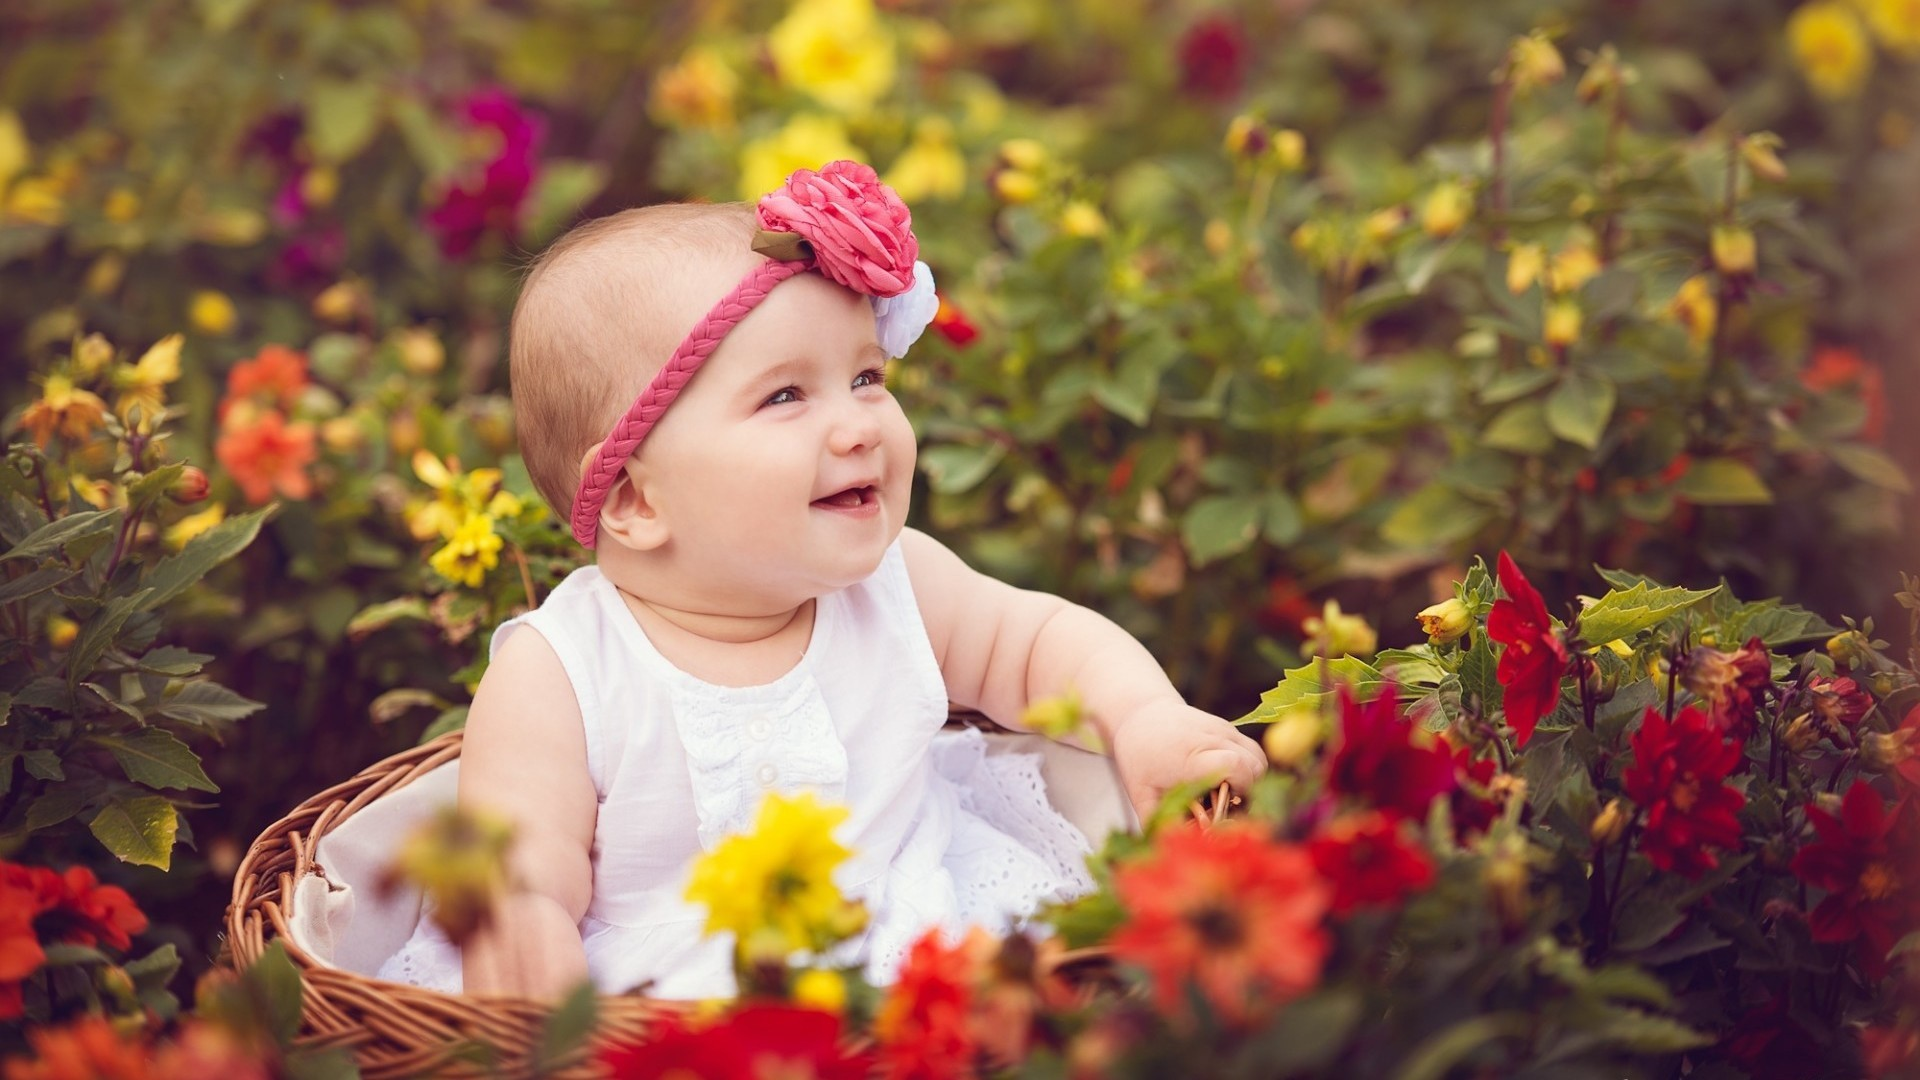 Pic Of Cute Girl Baby: 45 Small And Cute Baby Wallpaper Download For Free